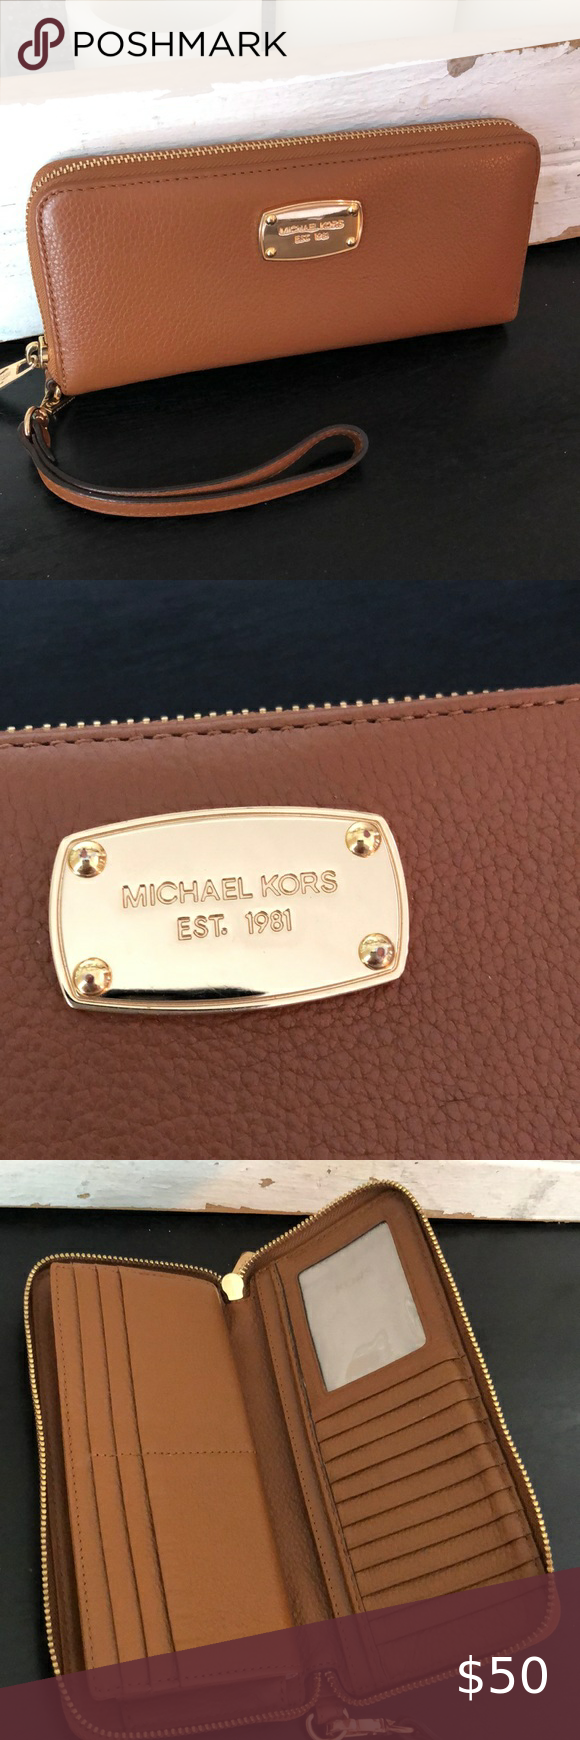 Michael Kors brown leather wristlet wallet Michael Kors camel brown leather wristlet wallet. In nexcellent condition.  Perfect for year round use due to neutral coloring.  Lots of space for credit cards along with zippered pocket for securing smaller things. Michael Kors Bags Wallets